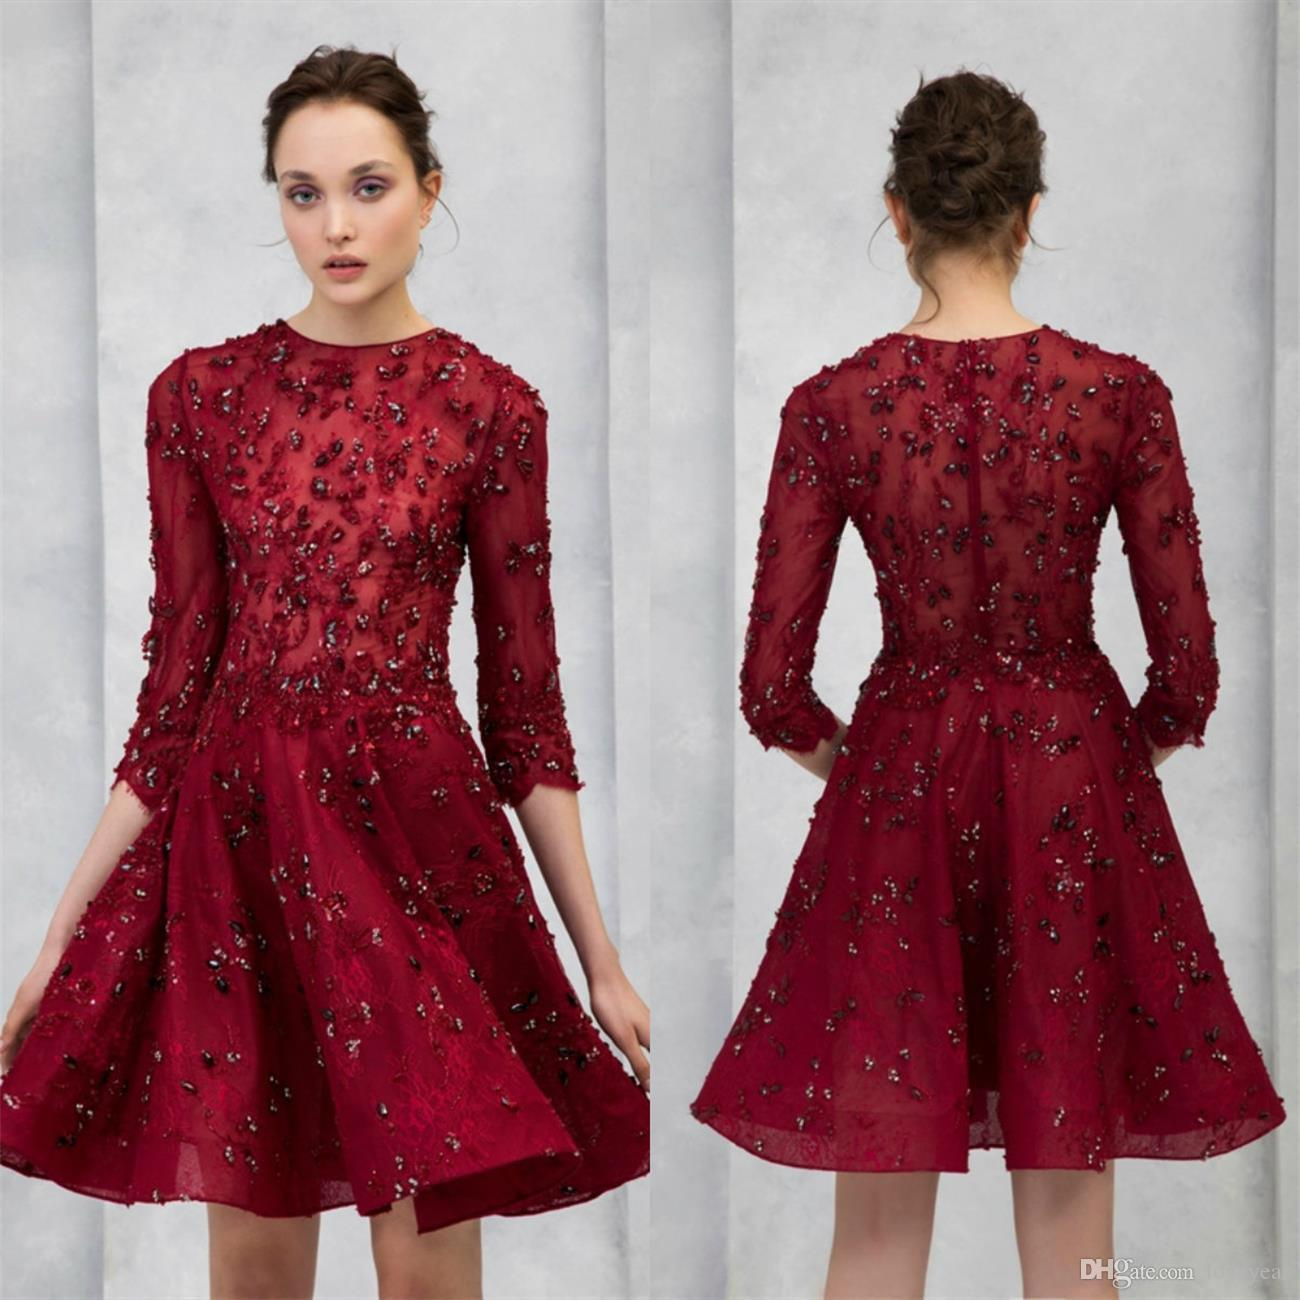 2020 Sexy A-Line Prom Dresses Jewel Neck Lace Appliqued Beaded Evening Dress Knee Length Short Long Sleeves Cocktail Homecoming Party Gowns